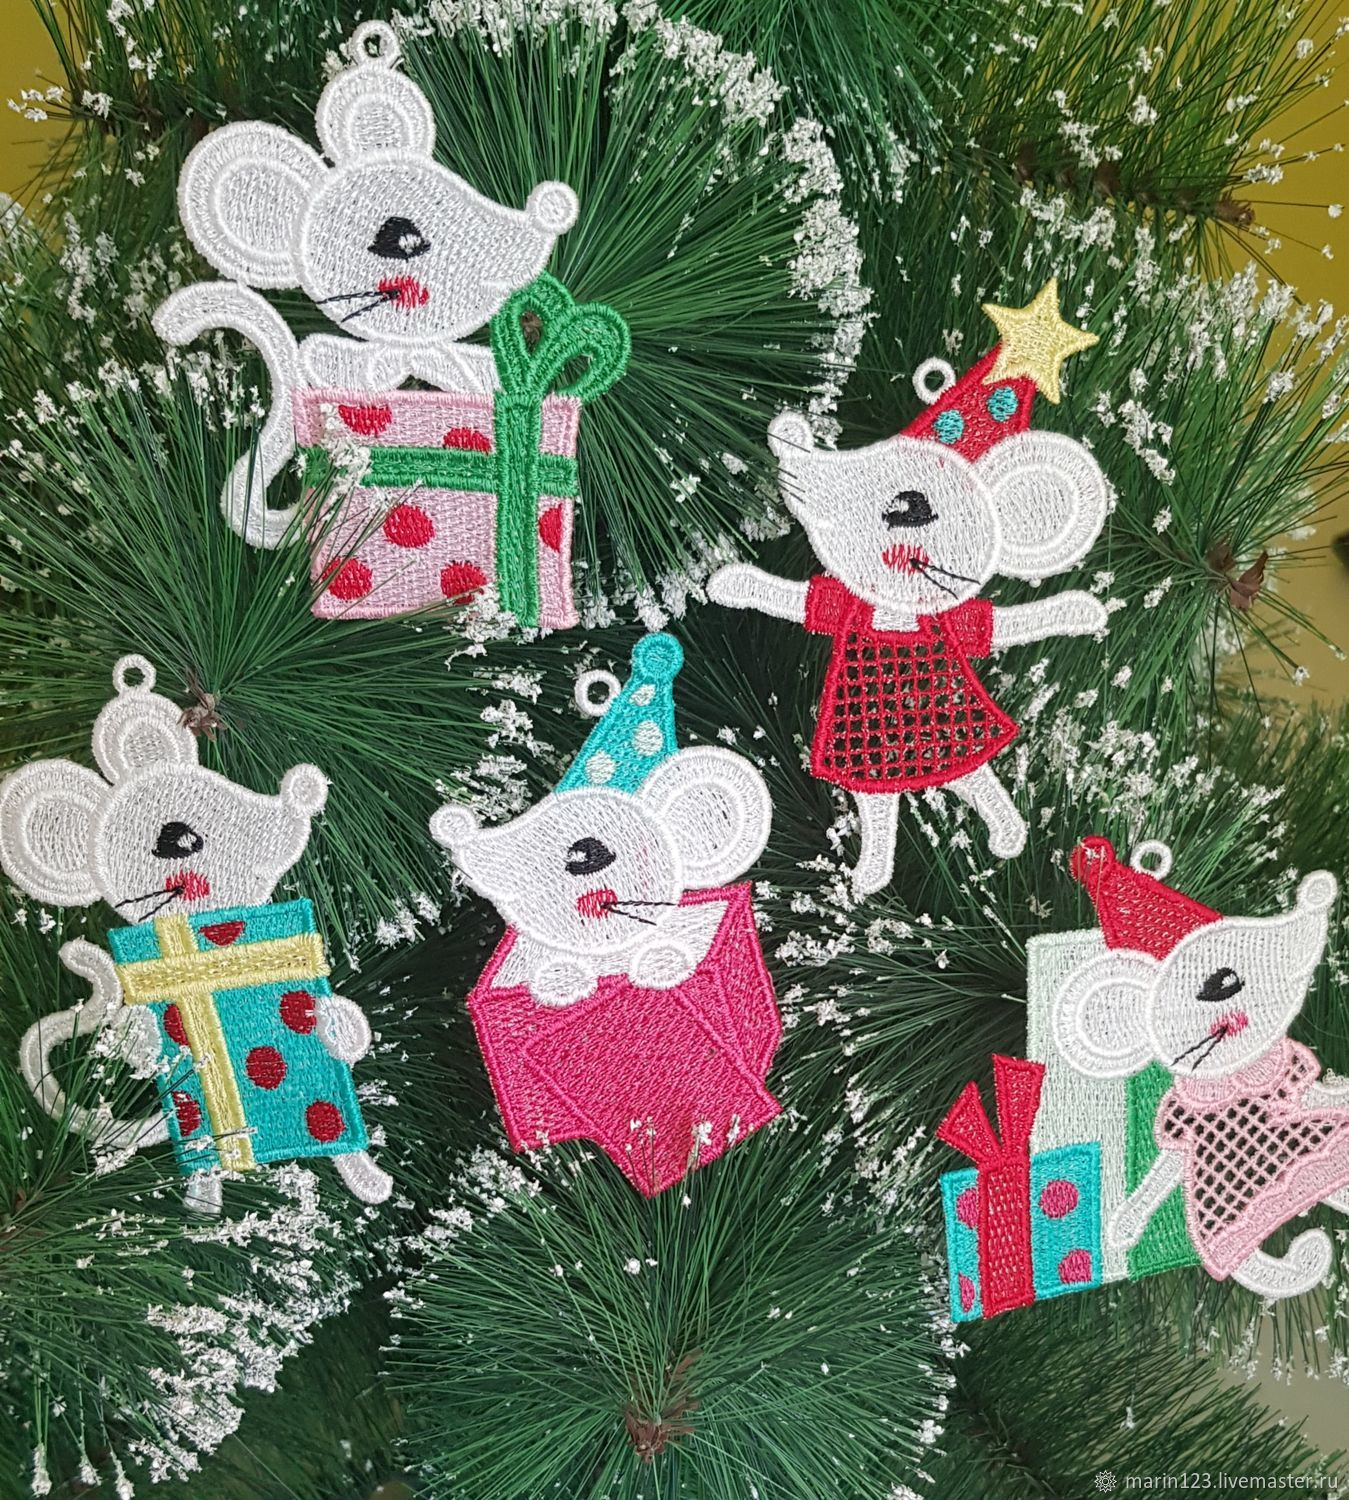 Newest Craft Ideas For Christmas 2020 White mice 2020. A set of Christmas ornaments – shop online on